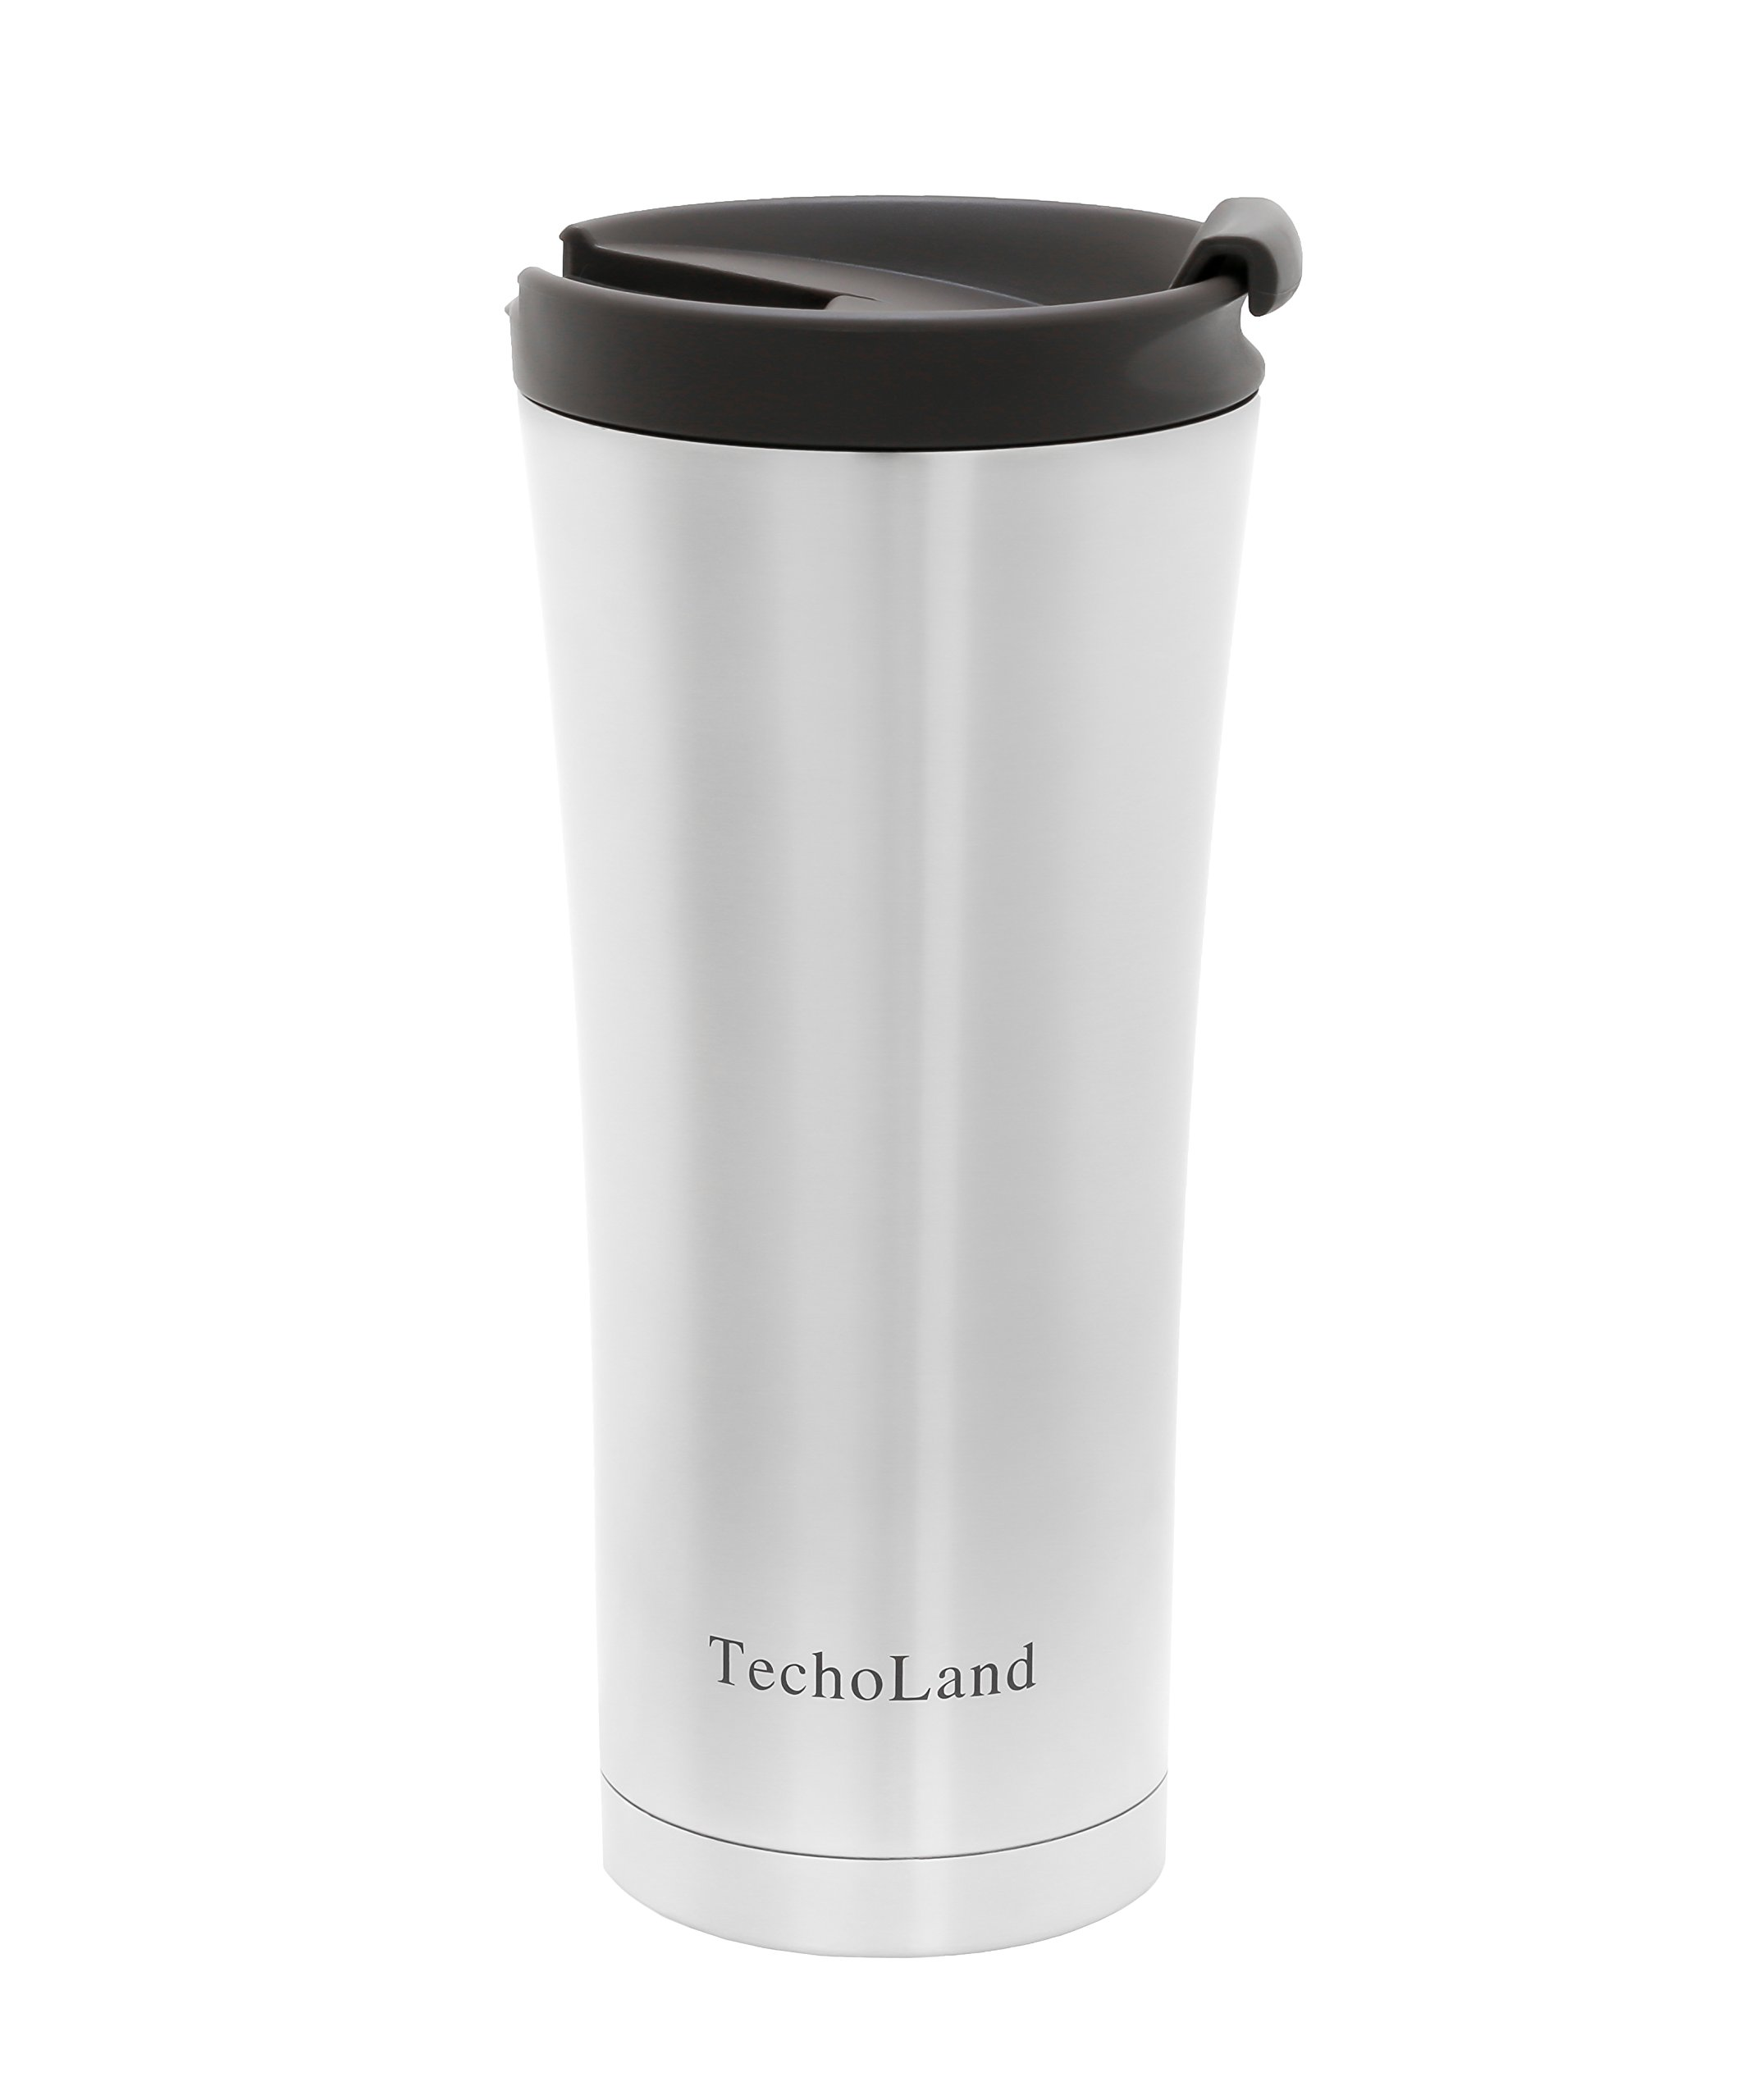 Vacuum Insulated Stainless Steel Travel Tumbler for Hot or Cold by Techoland Premium 16 Oz Mug with Leak/Spill and Splash Proof Lid